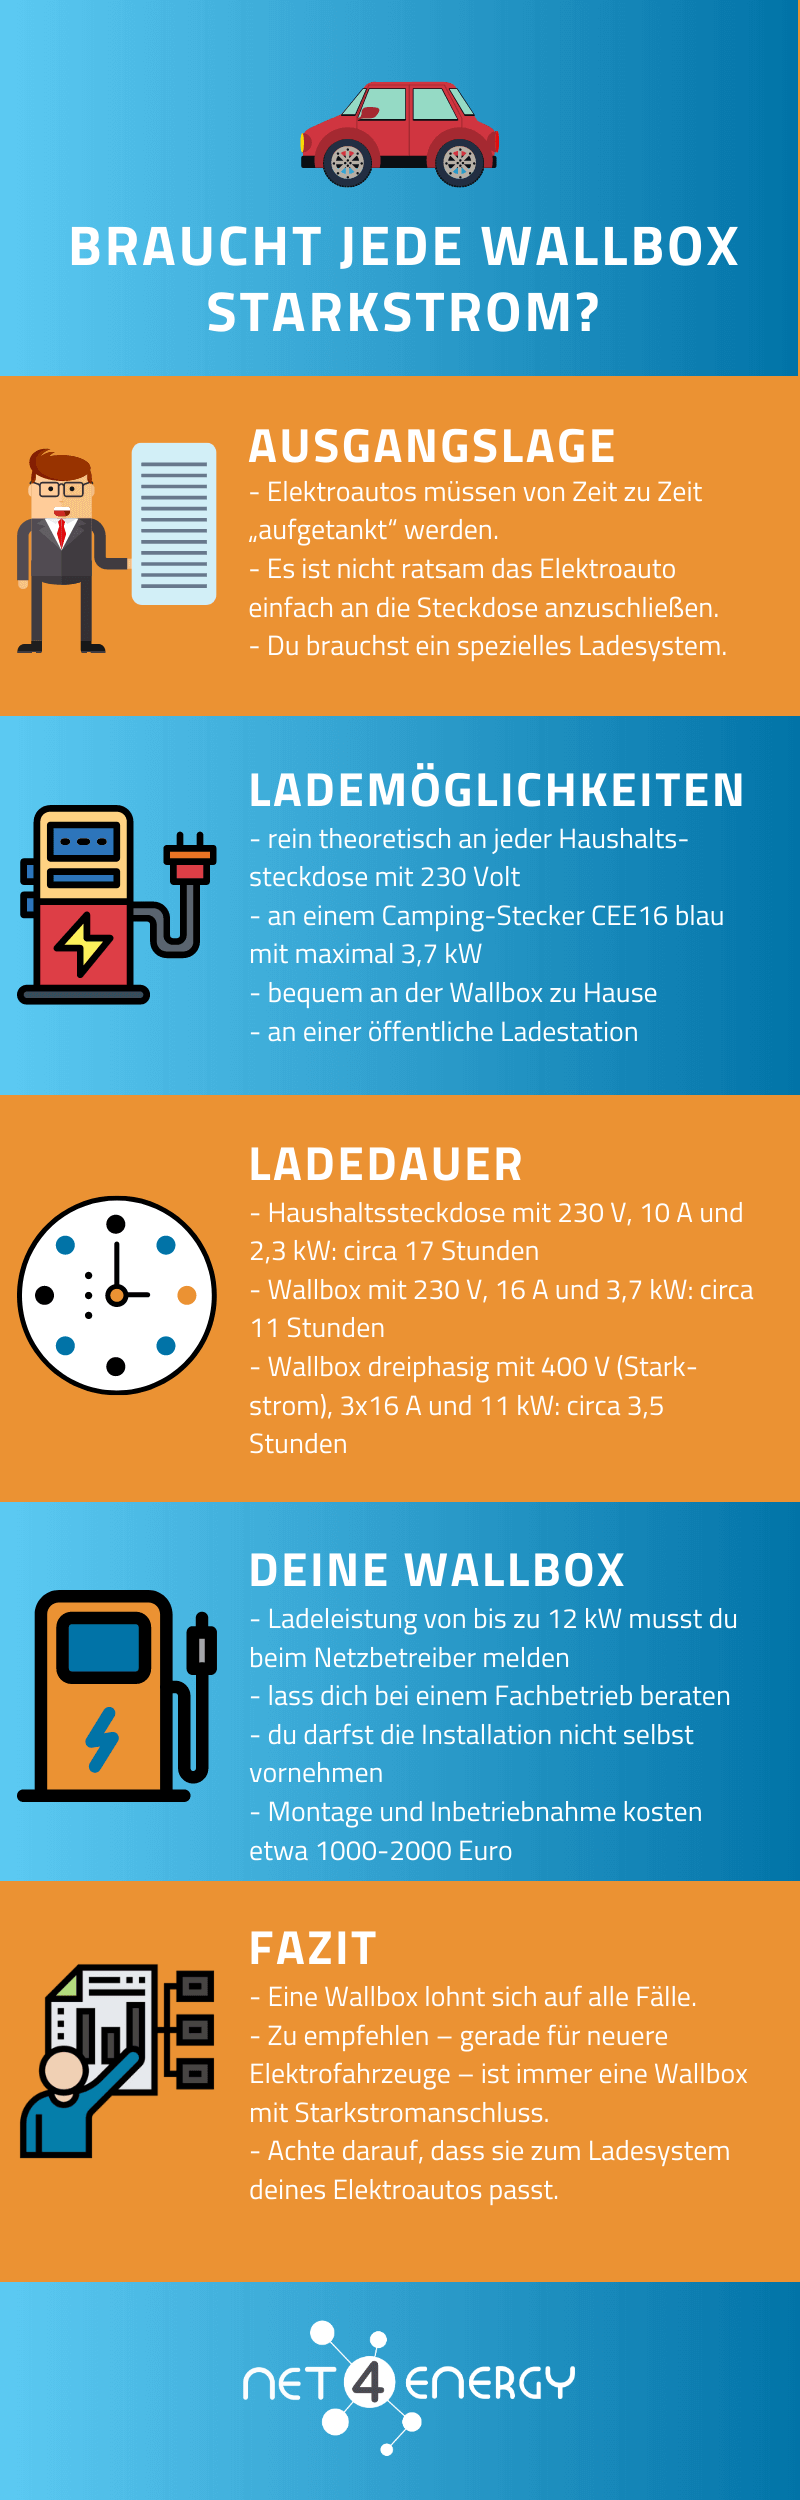 wallbox-starkstrom-infografik-net4energy